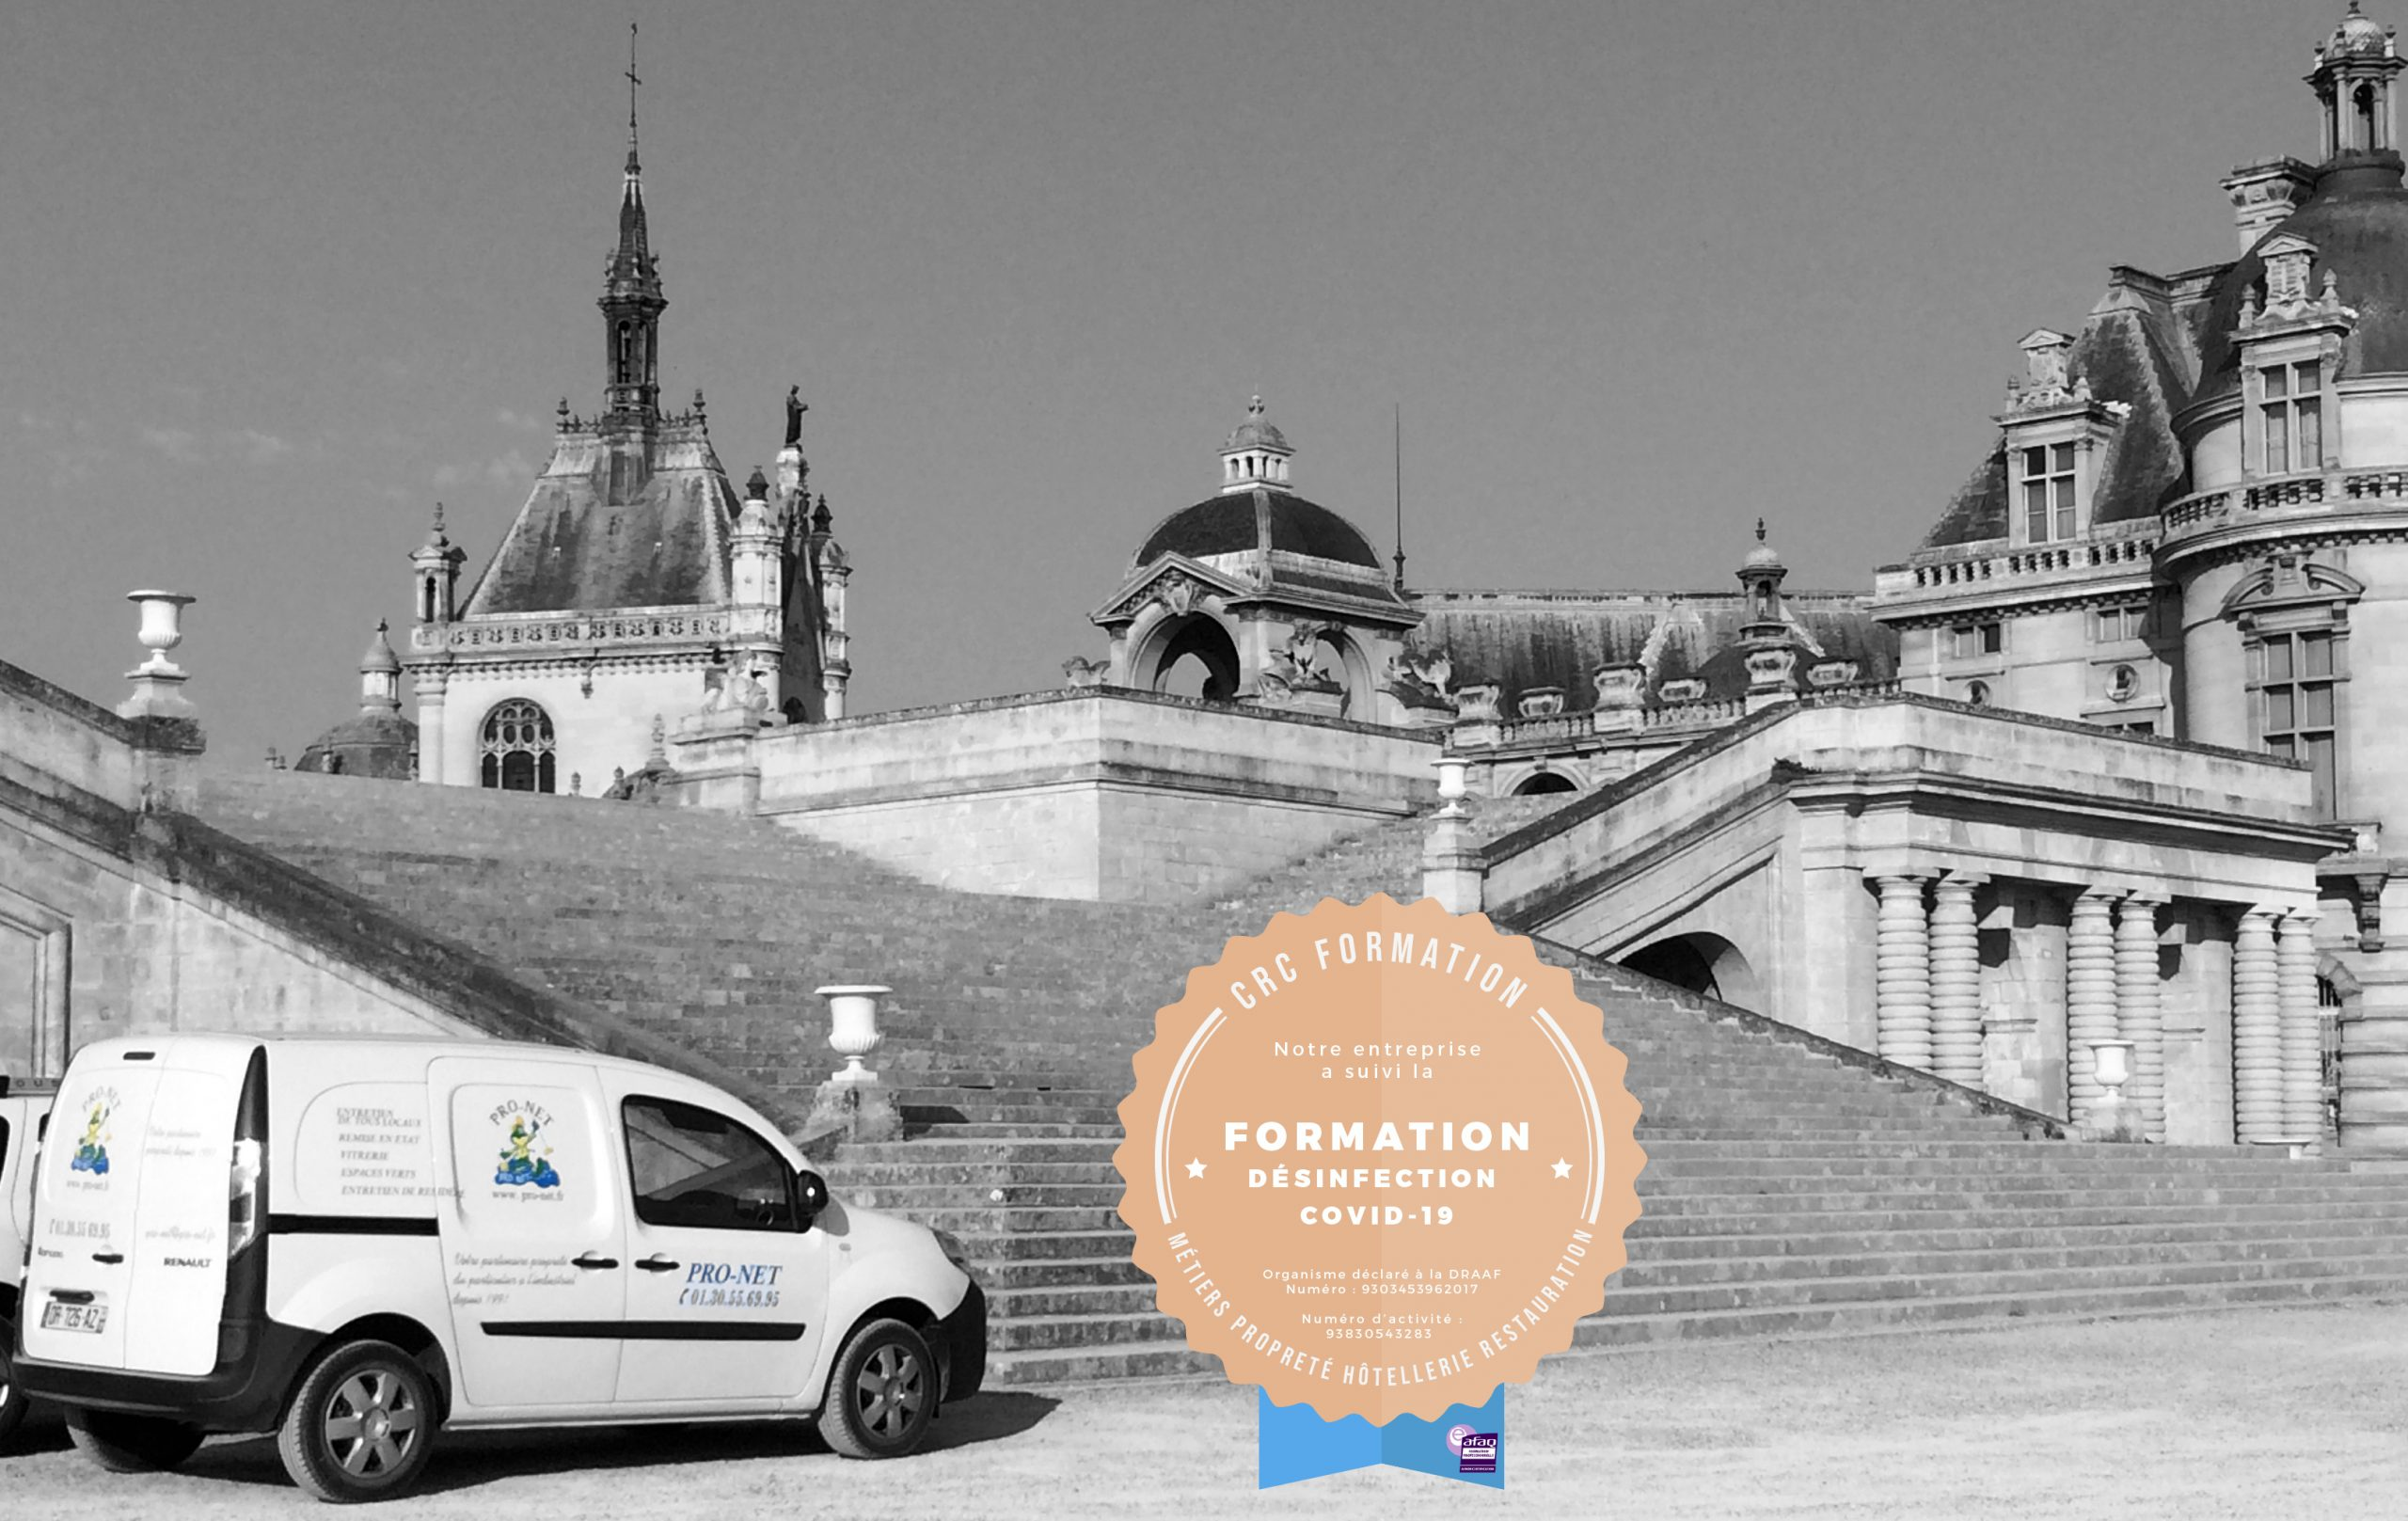 voiture-chateau-chantilly-NB-ET-CERTIFICAT-DESINFECTION-scaled